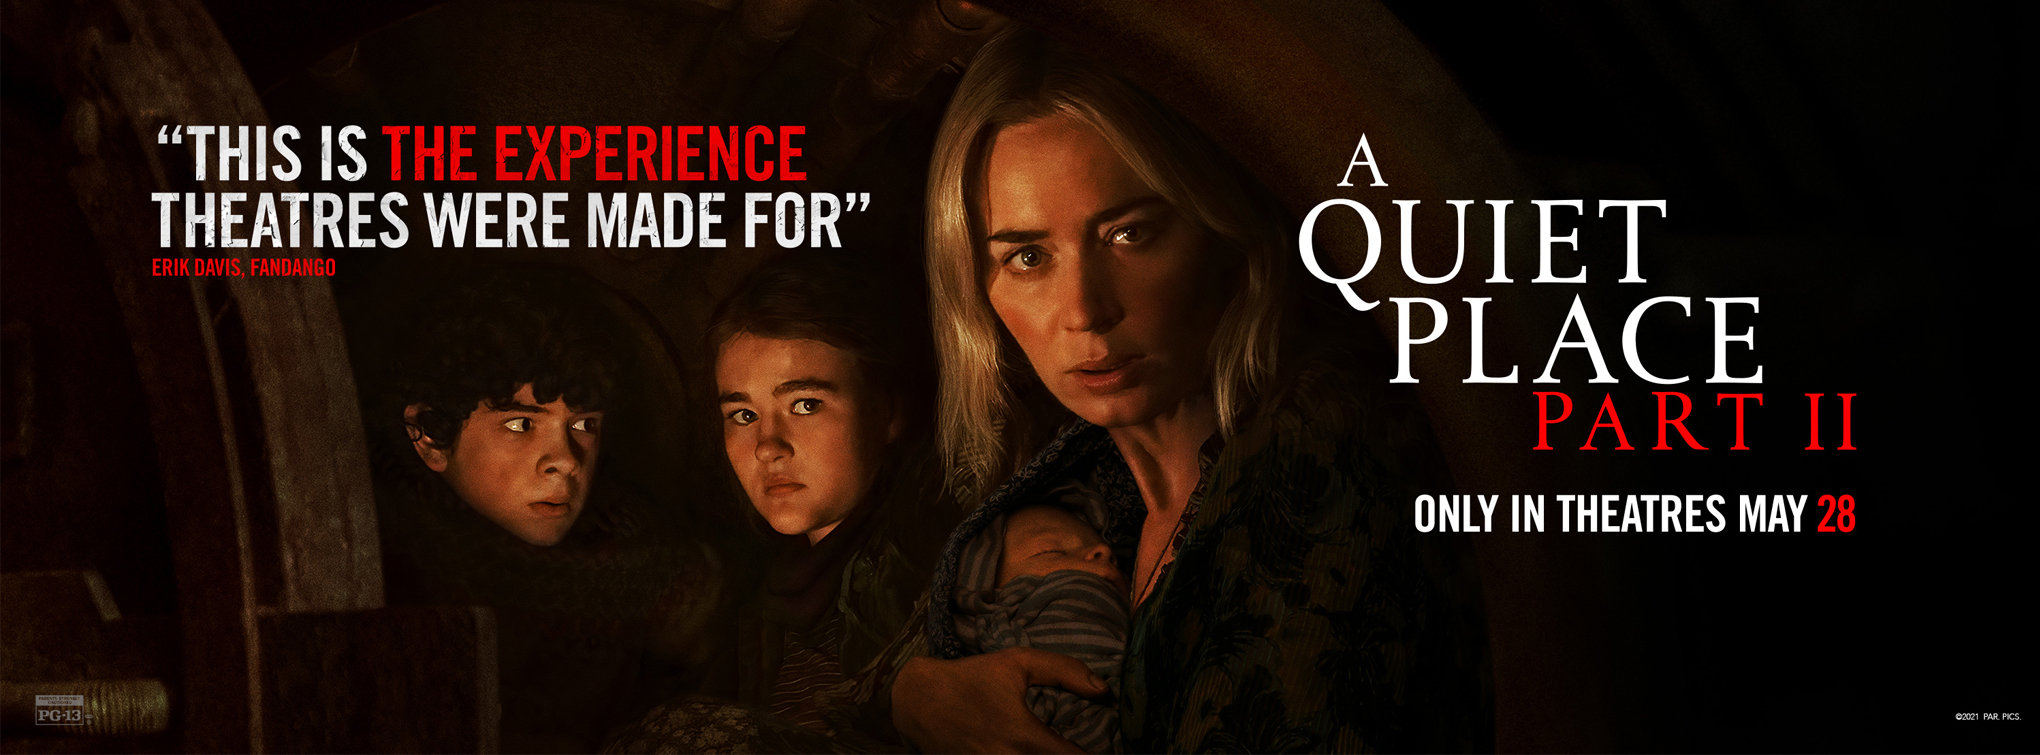 Slider image for A Quiet Place Part II